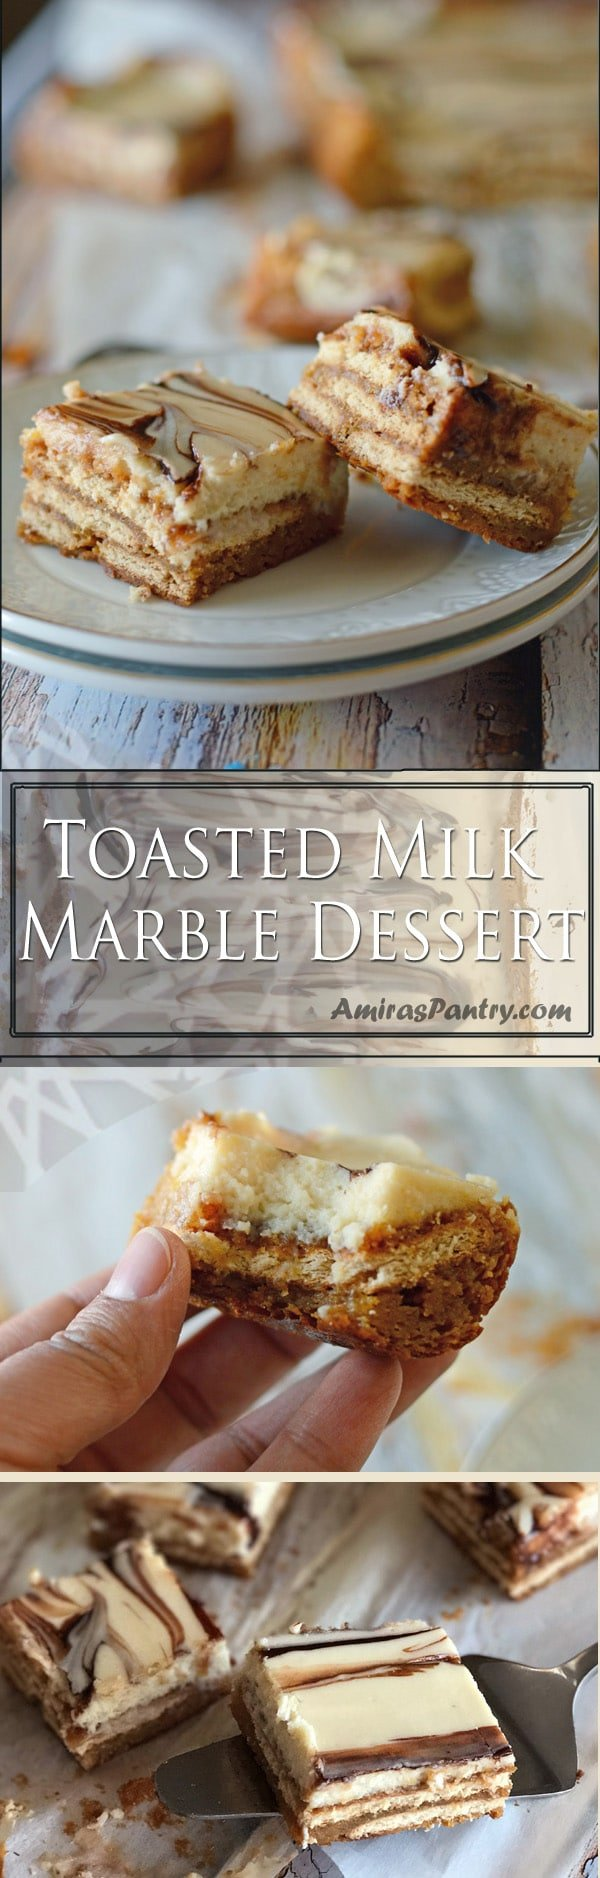 Roasted milk dessert that is very rich, smooth and just too tasty and too wonderful.